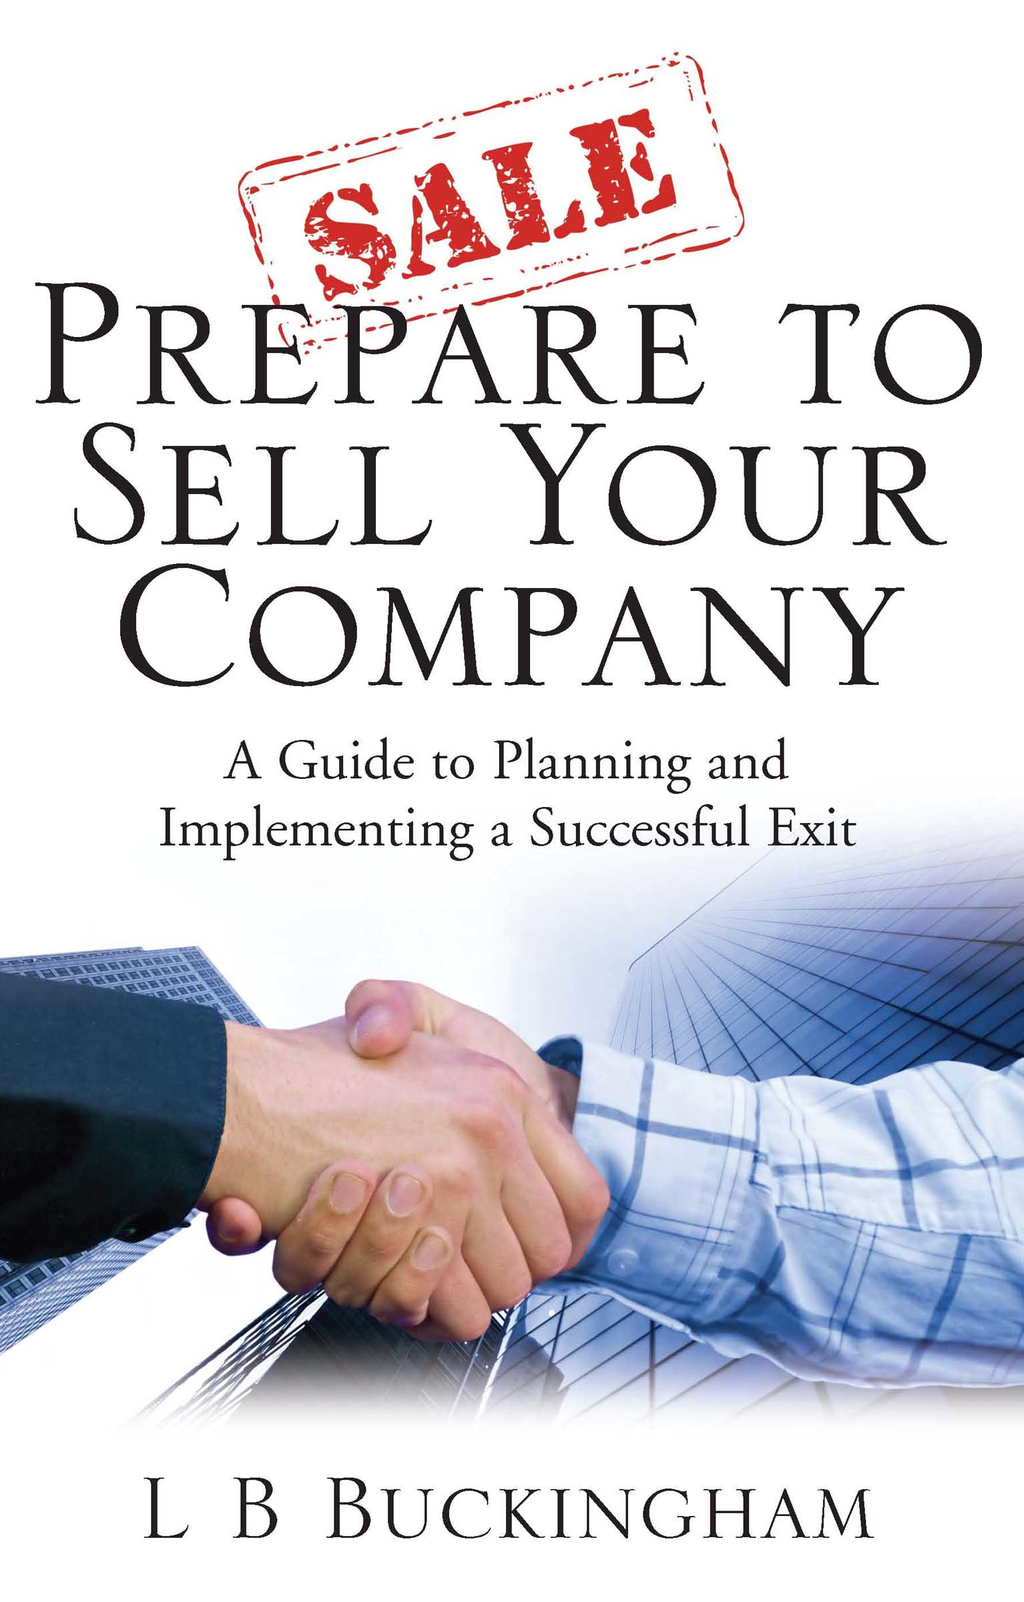 Prepare To Sell Your Company A Guide to Planning and Implementing a Successful Exit